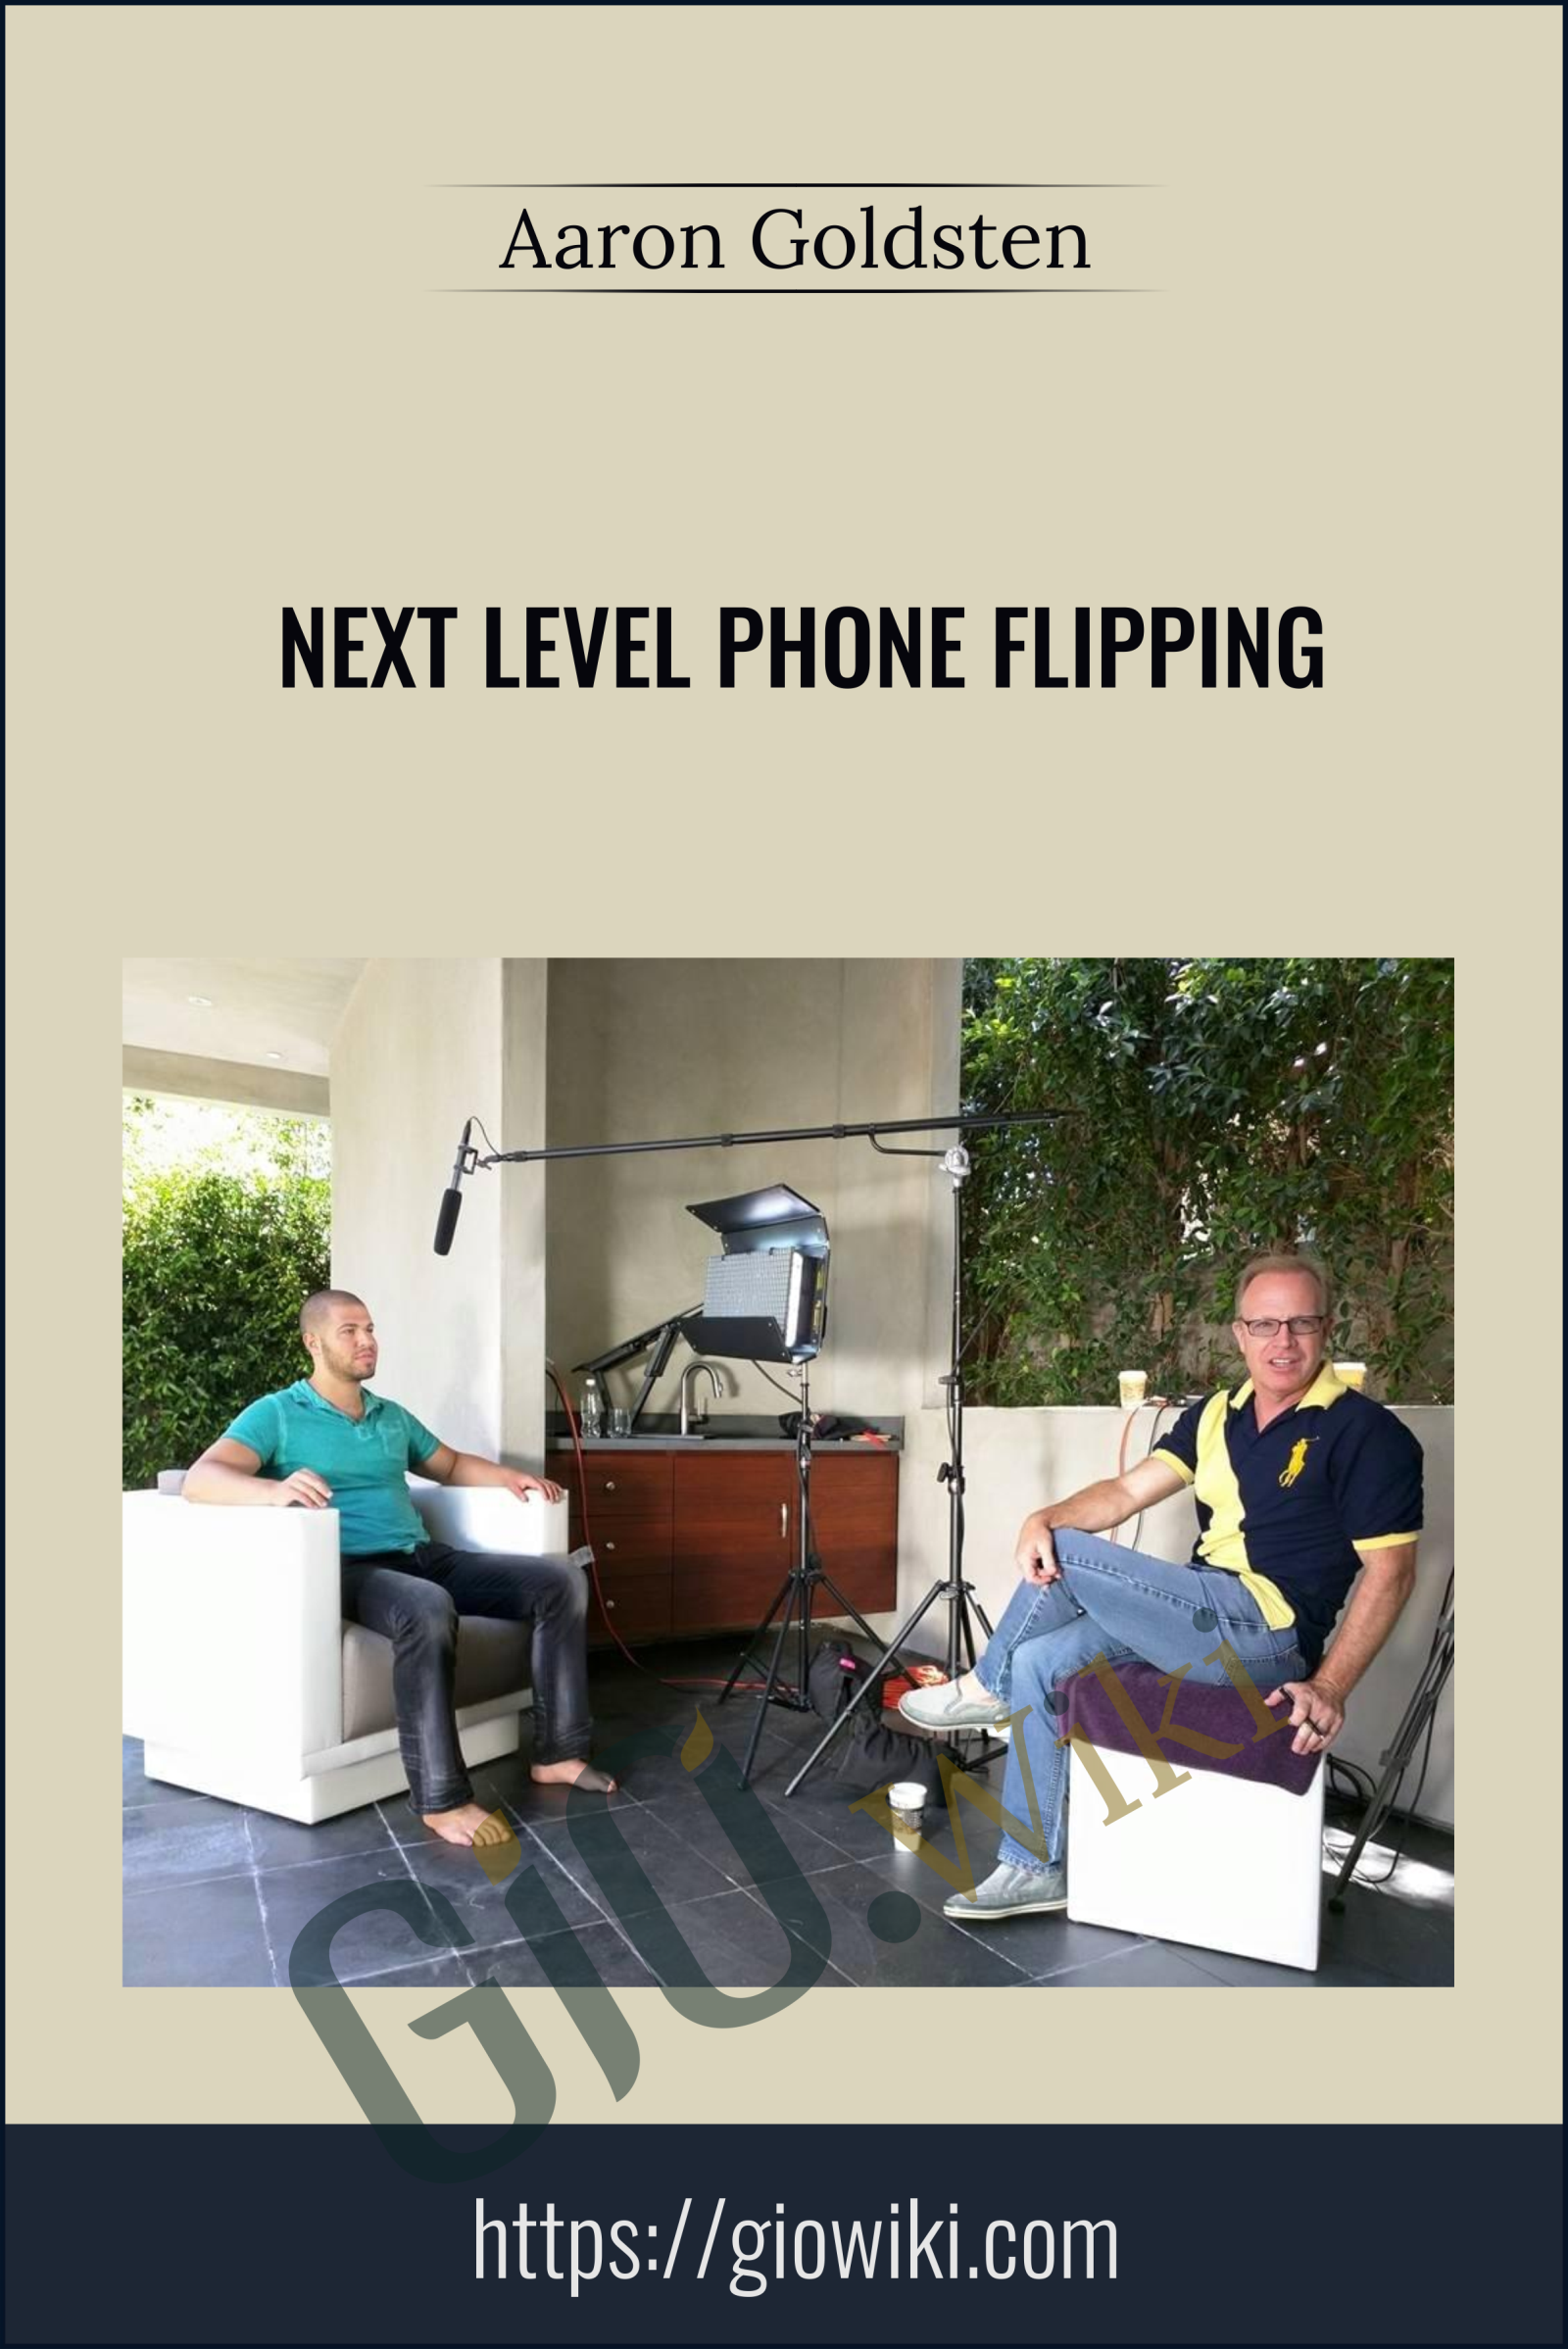 Next Level Phone Flipping - Aaron Goldsten